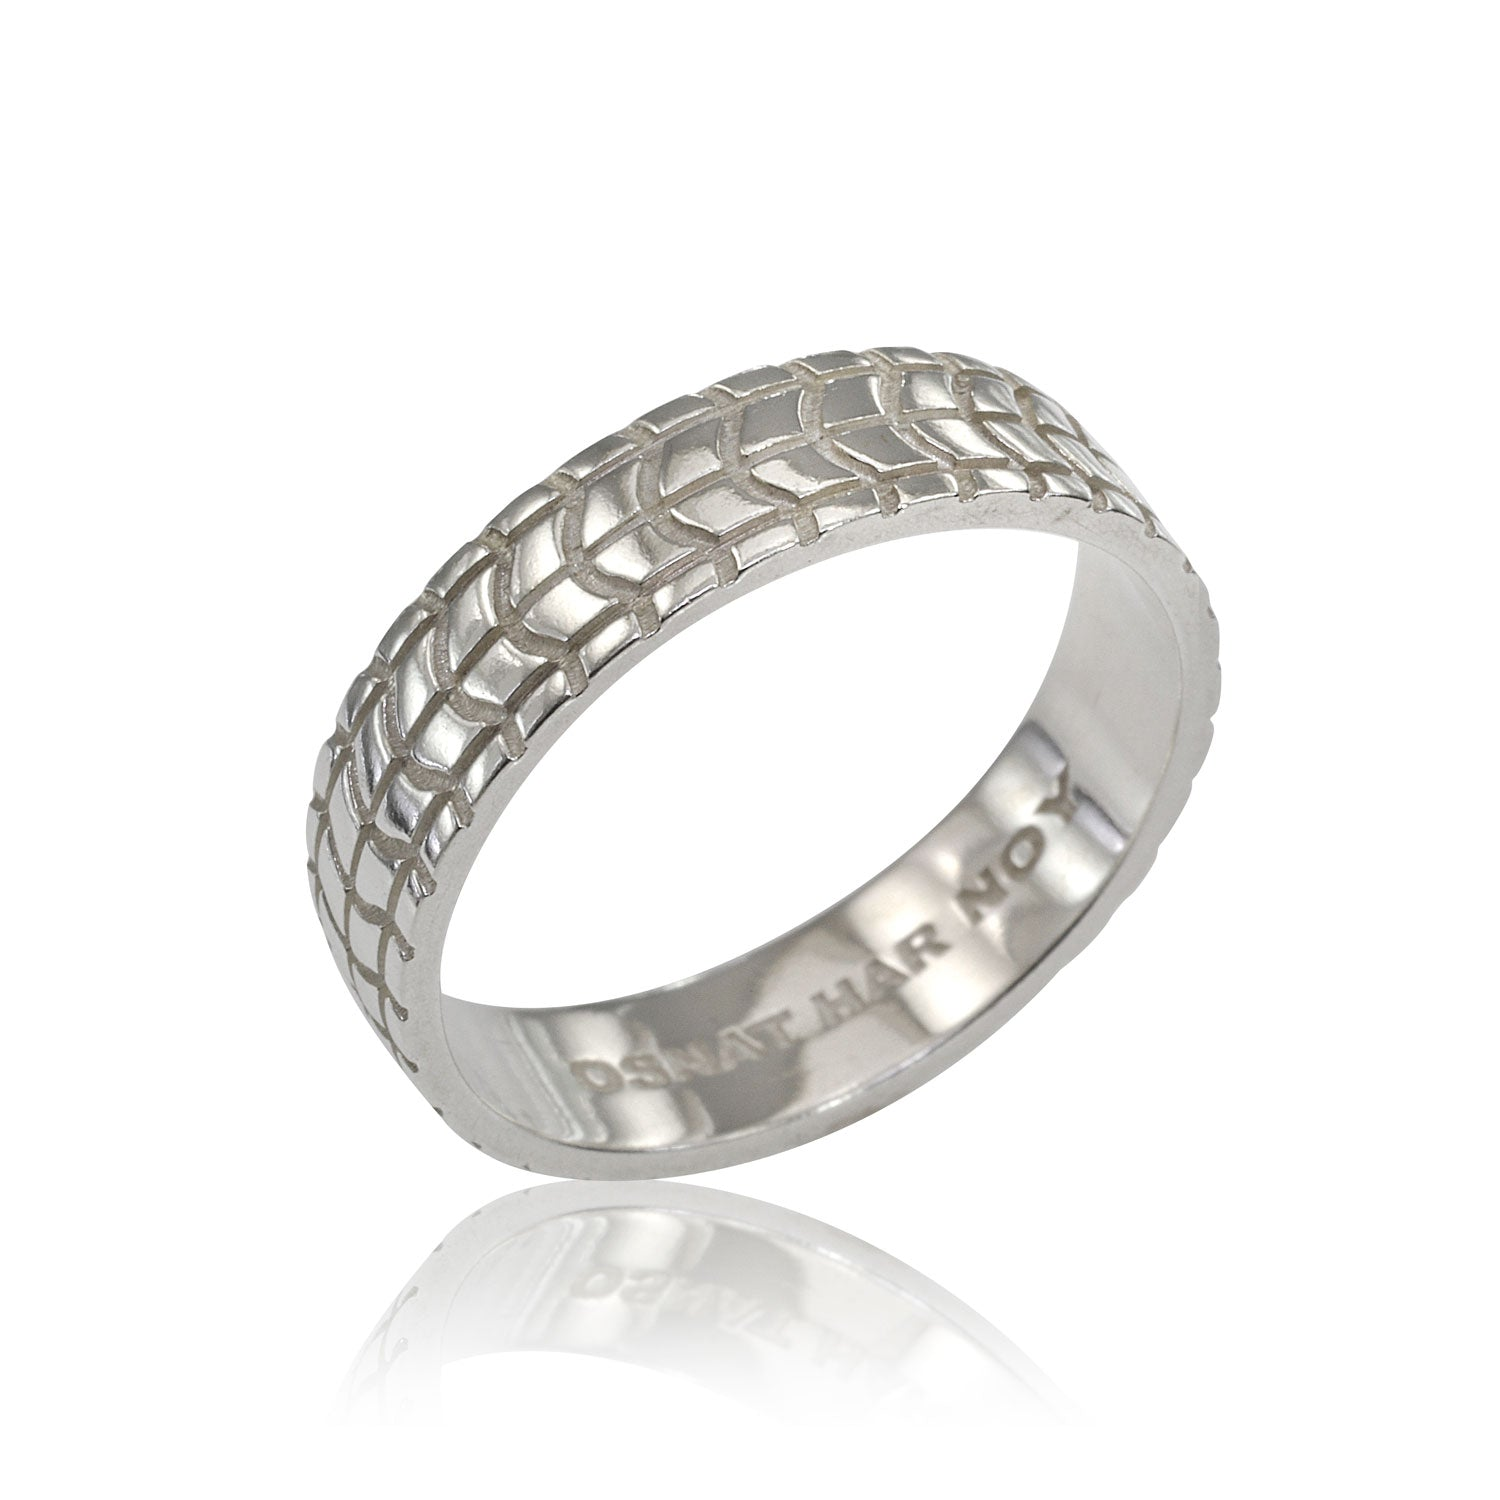 Men S 6mm Geometric Pattern Wedding Band In 14k White Gold Osnat Har Noy Jewelry